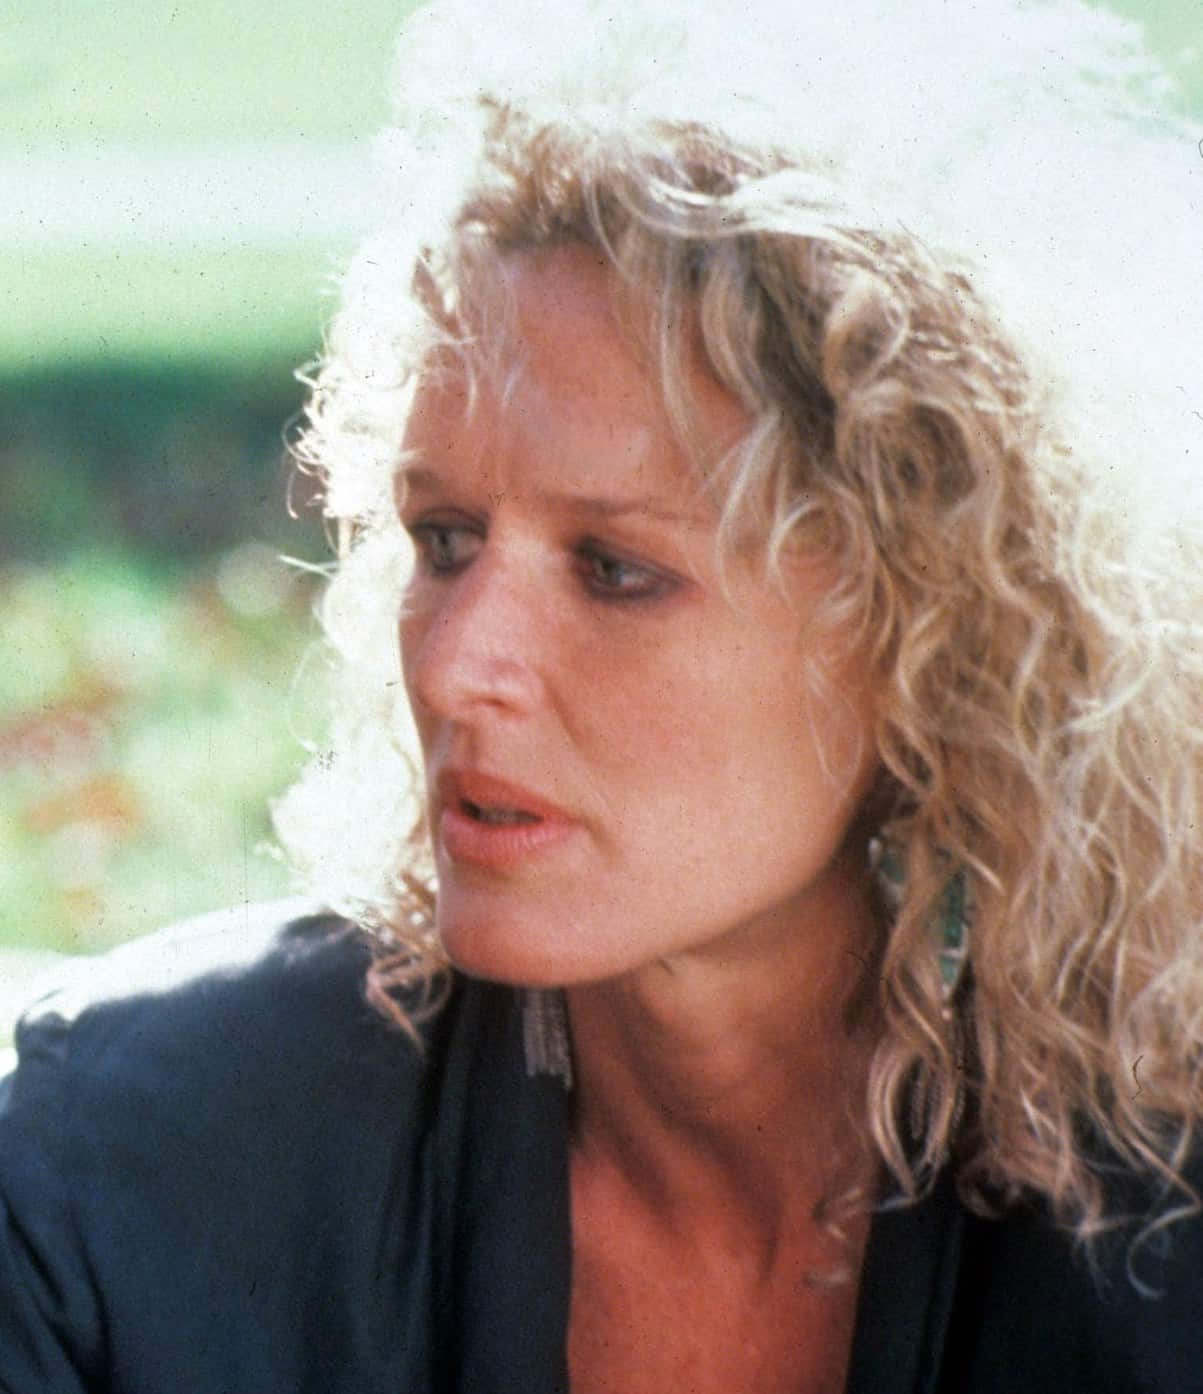 16 2 3 20 Things You Might Not Have Realised About Fatal Attraction